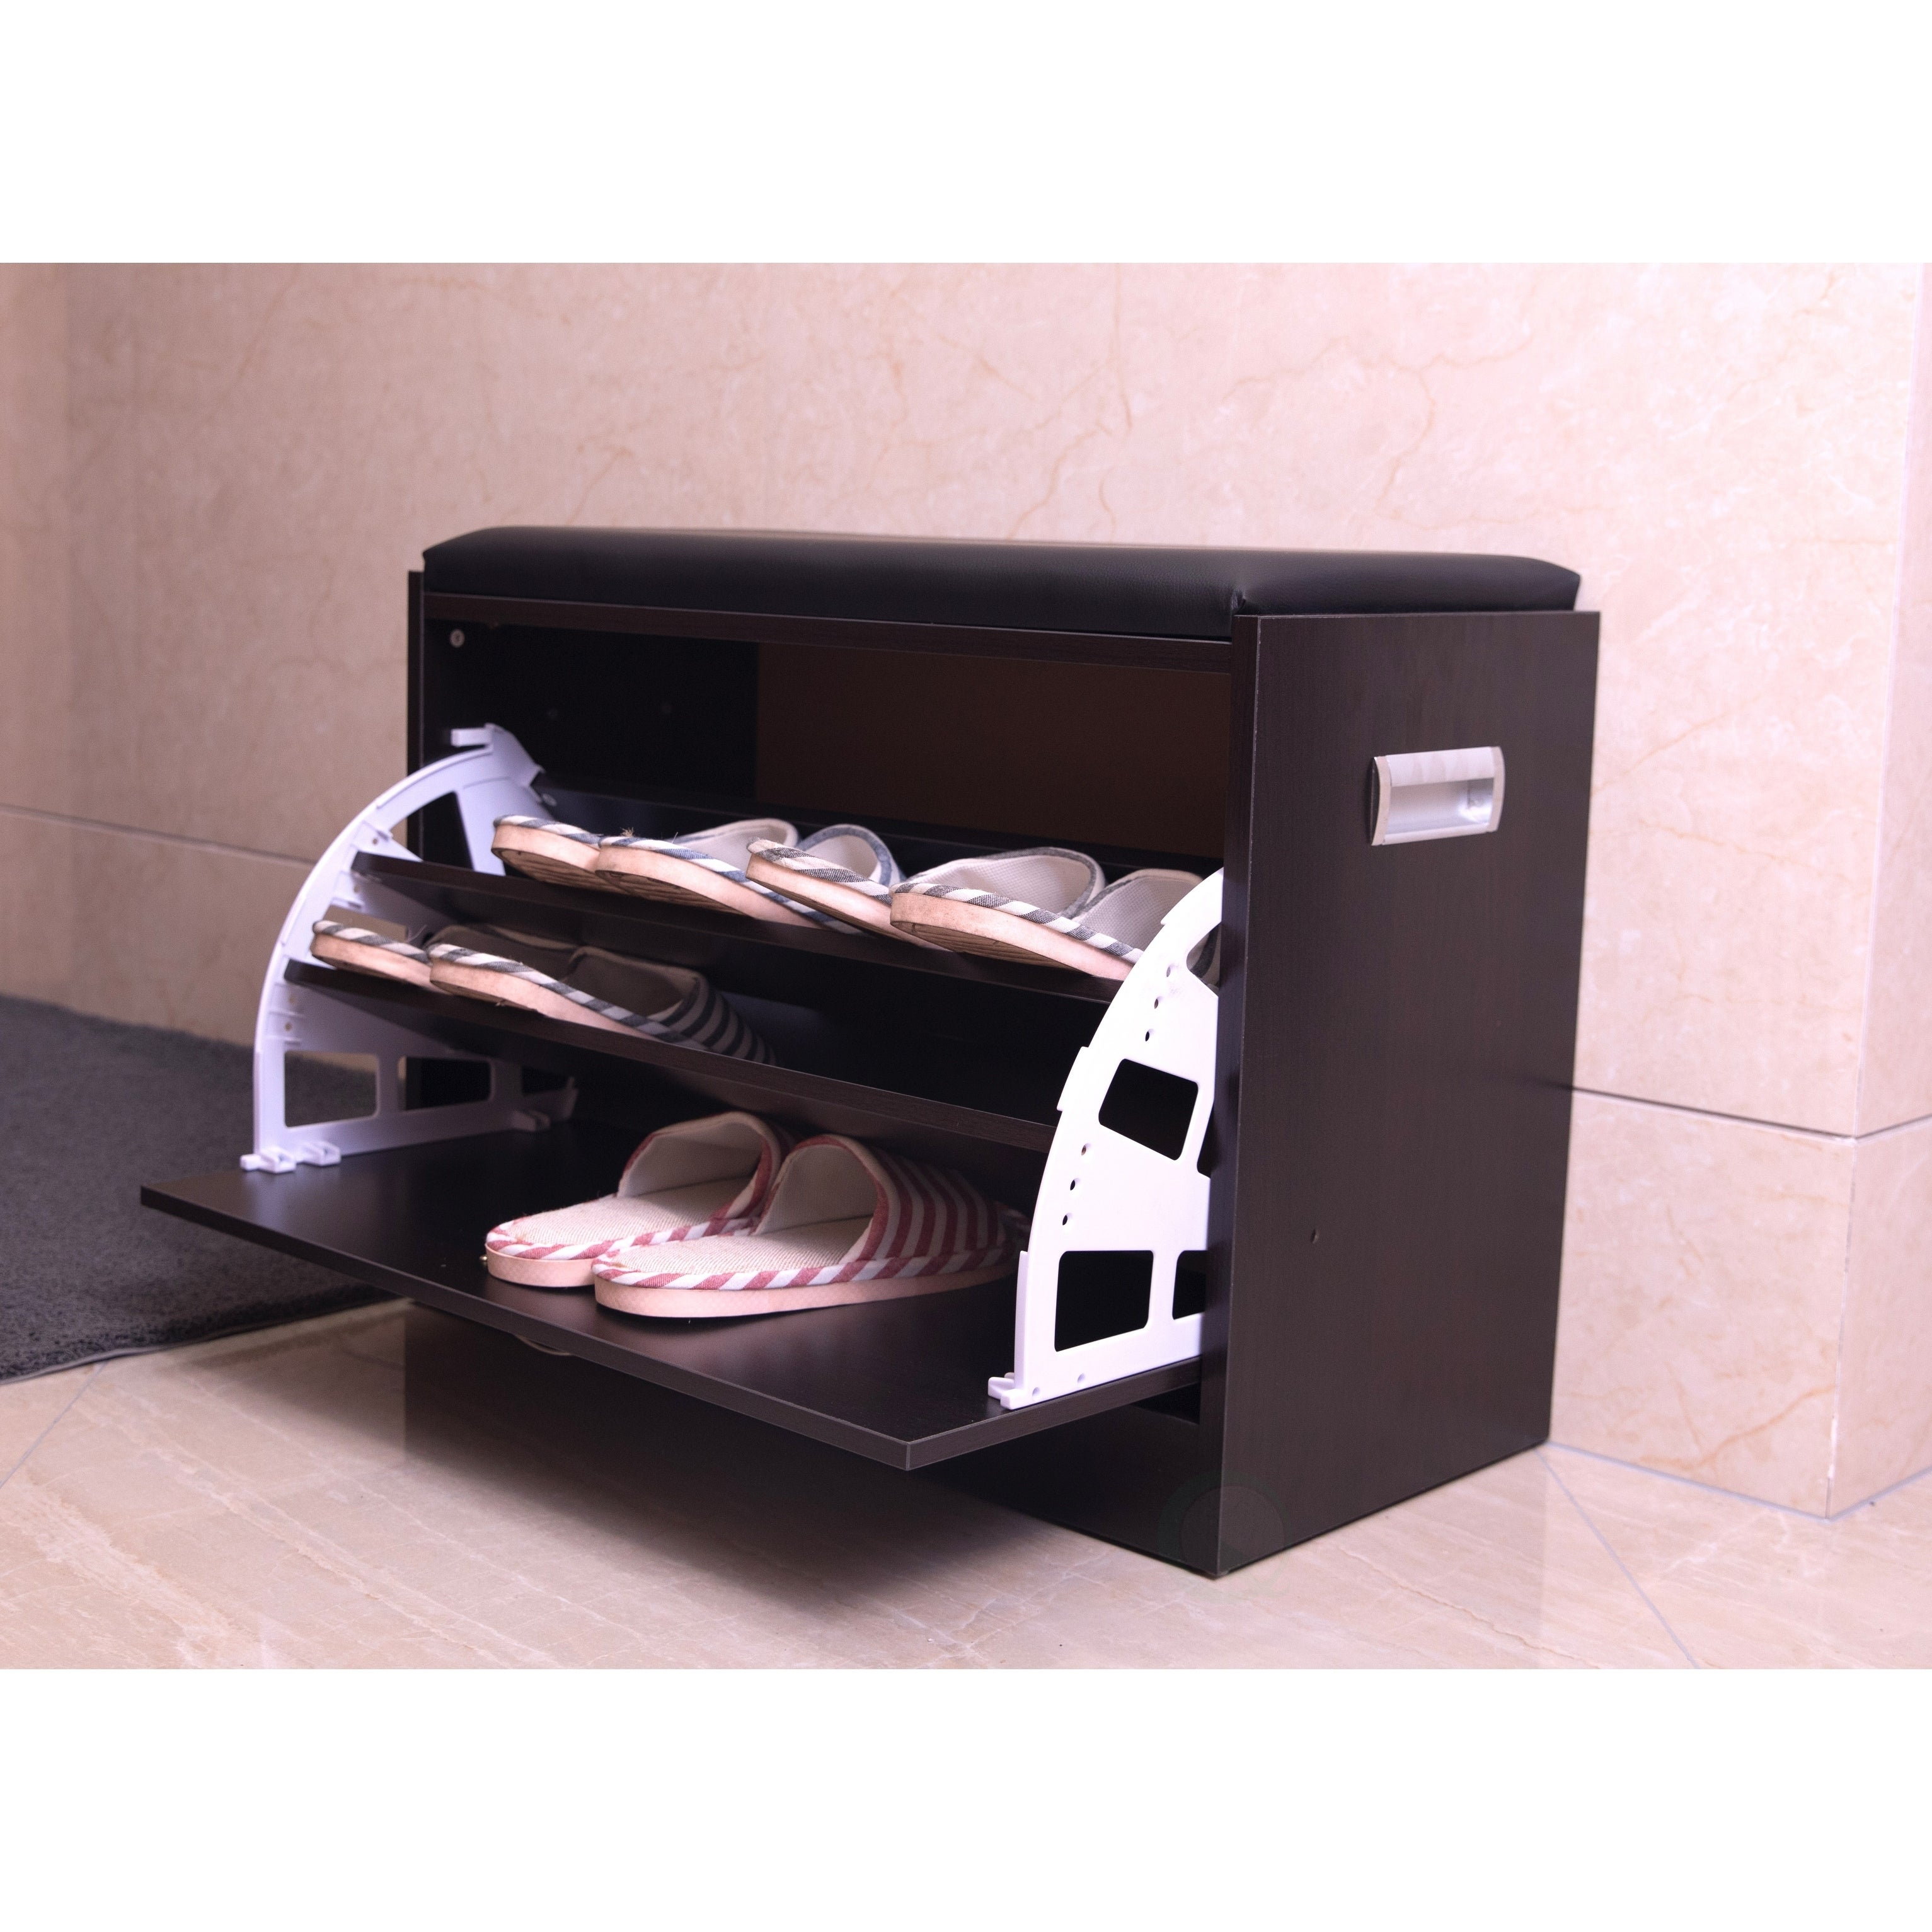 Shop Black Wooden Fold Out Shoe Organizer   Shoe Storage Bench With Leather  Cushion   Free Shipping Today   Overstock.com   22543832